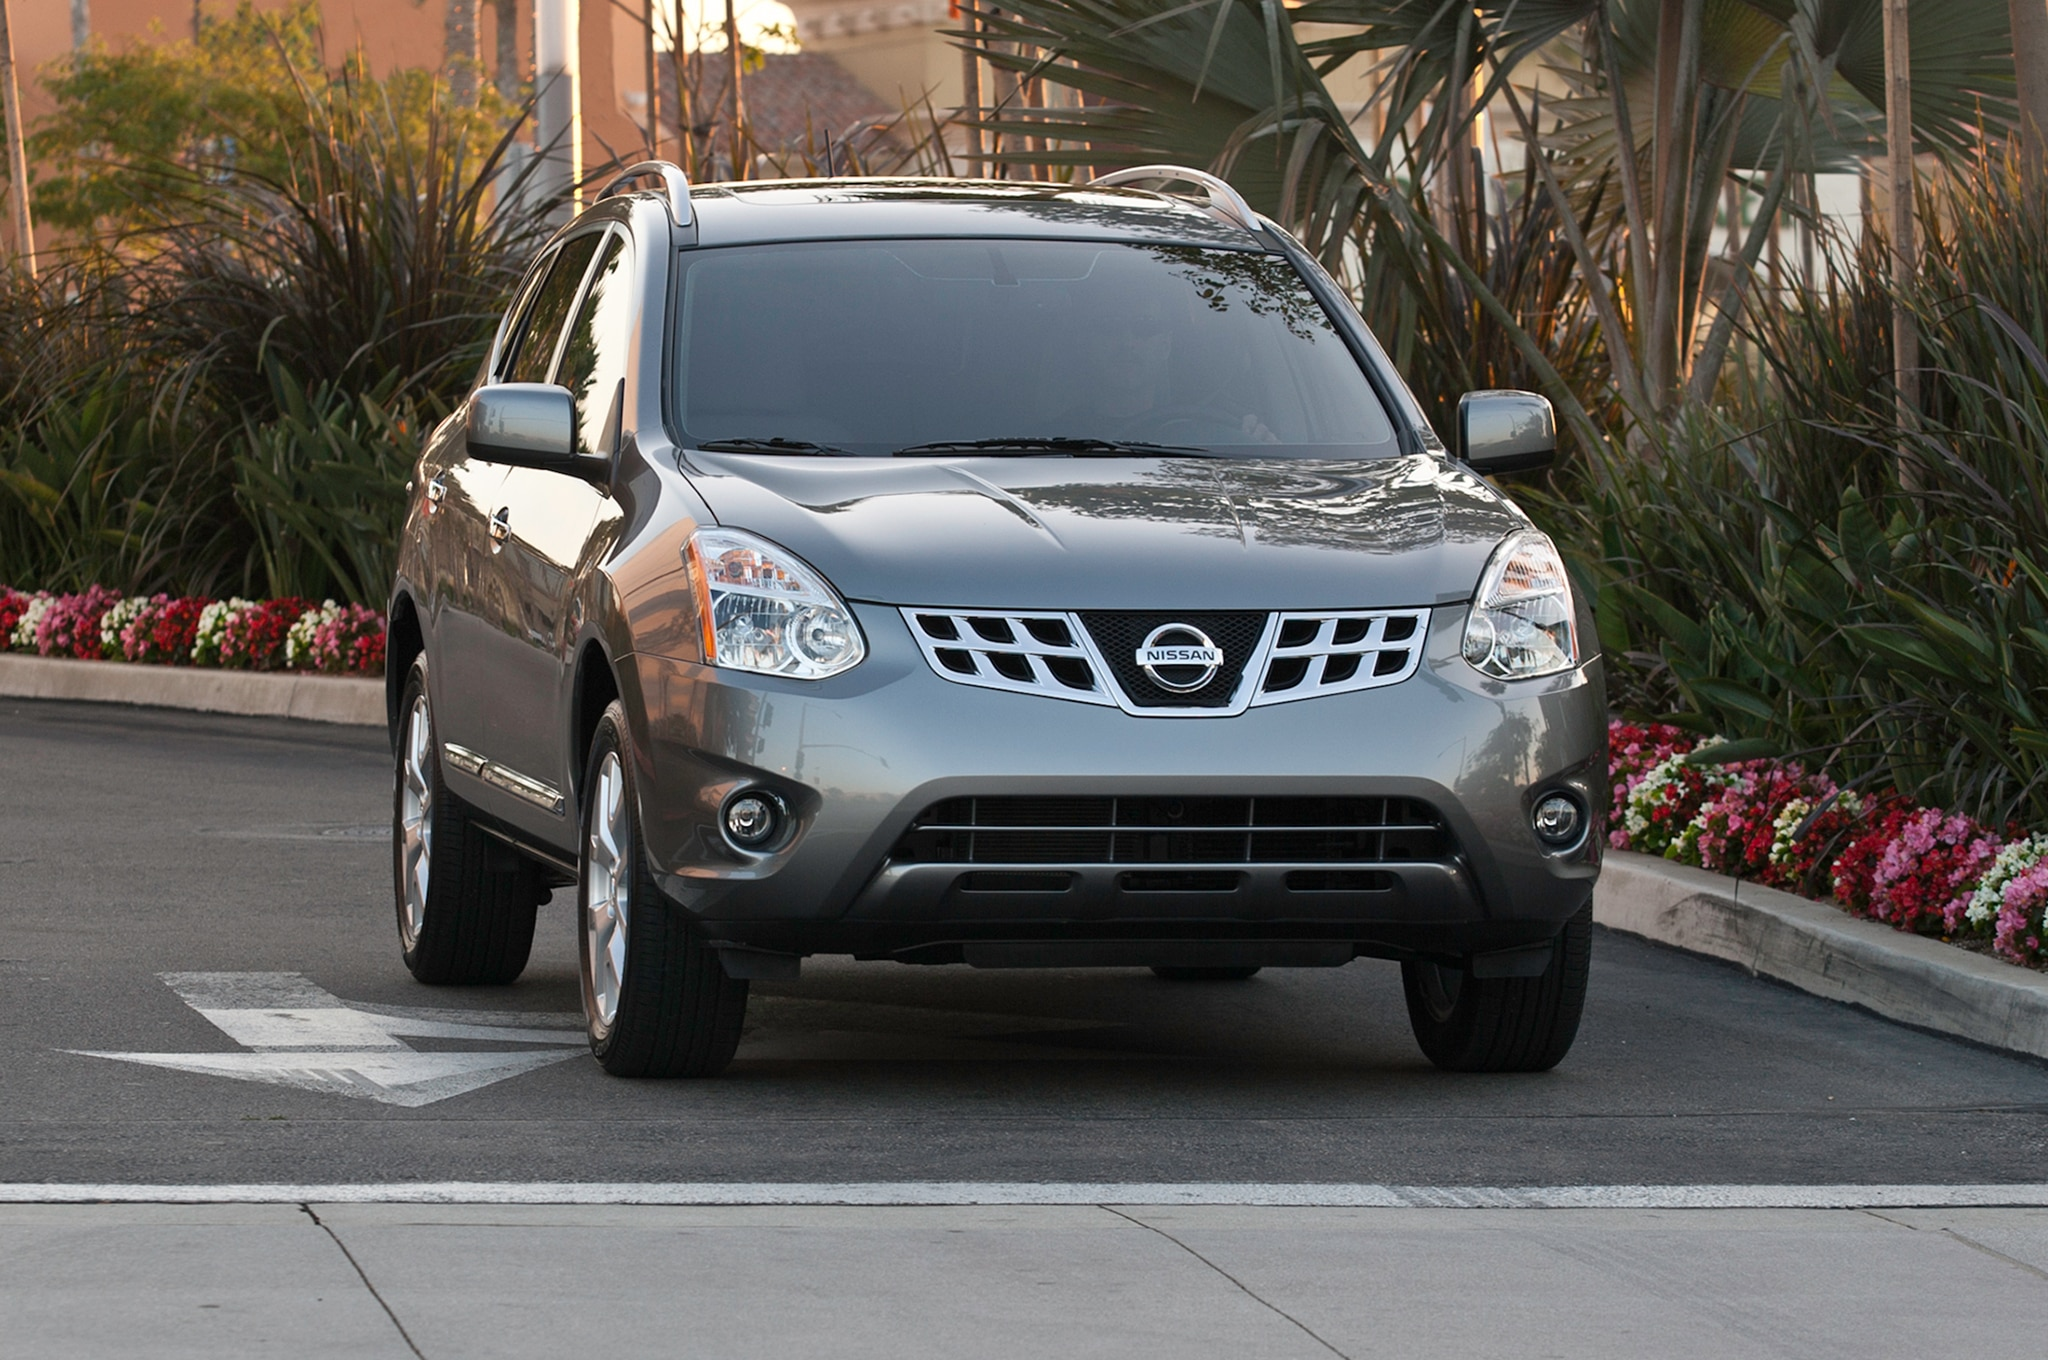 2014 nissan rogue select starts at 20850 automobile magazine though vanachro Gallery